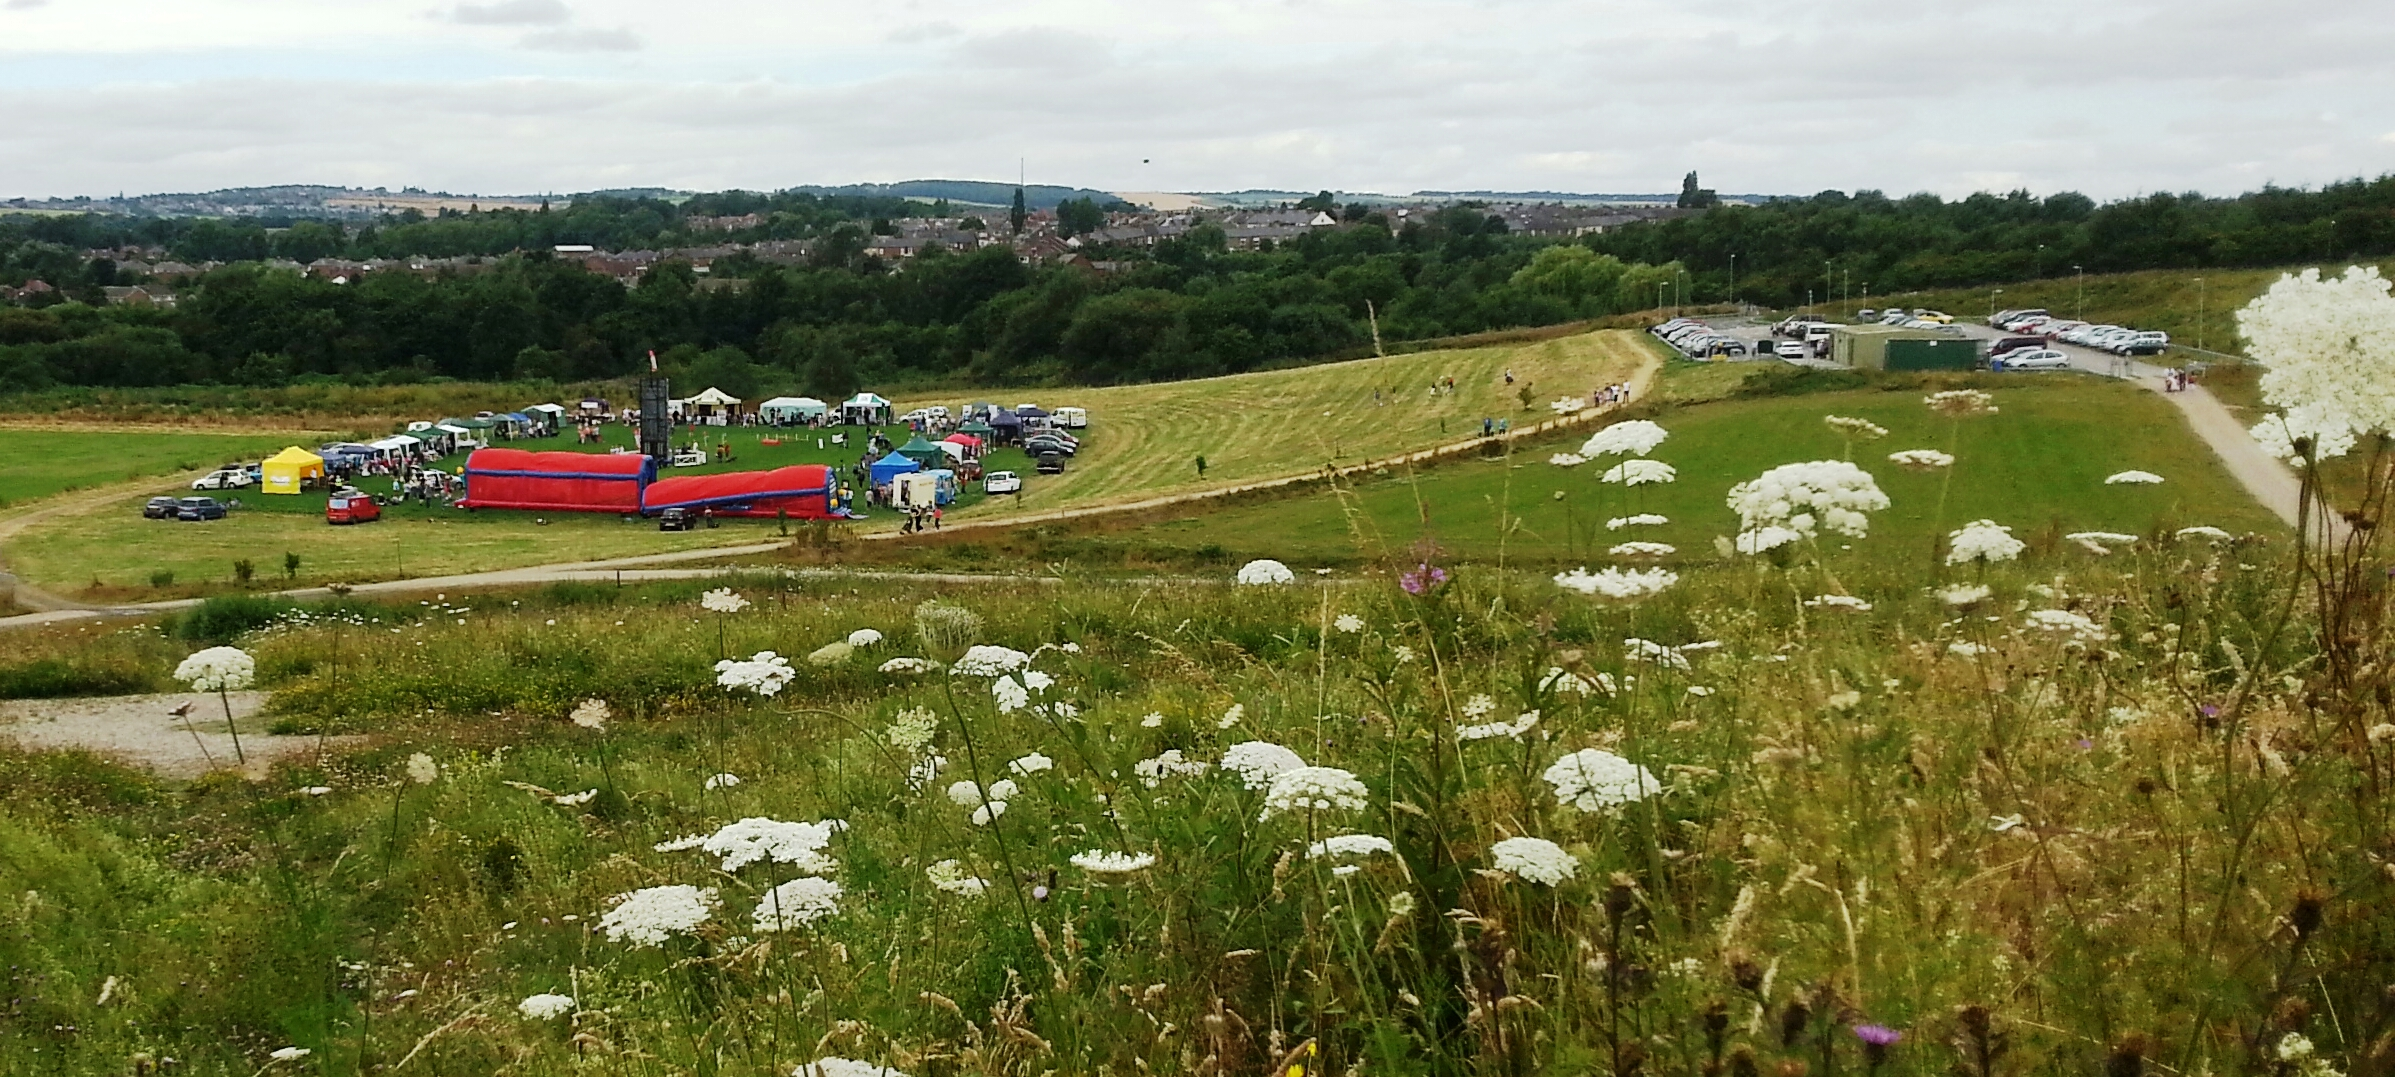 A community Gala held at Land Trust site, Rabbit Ings Country Park in the Summer of 2014